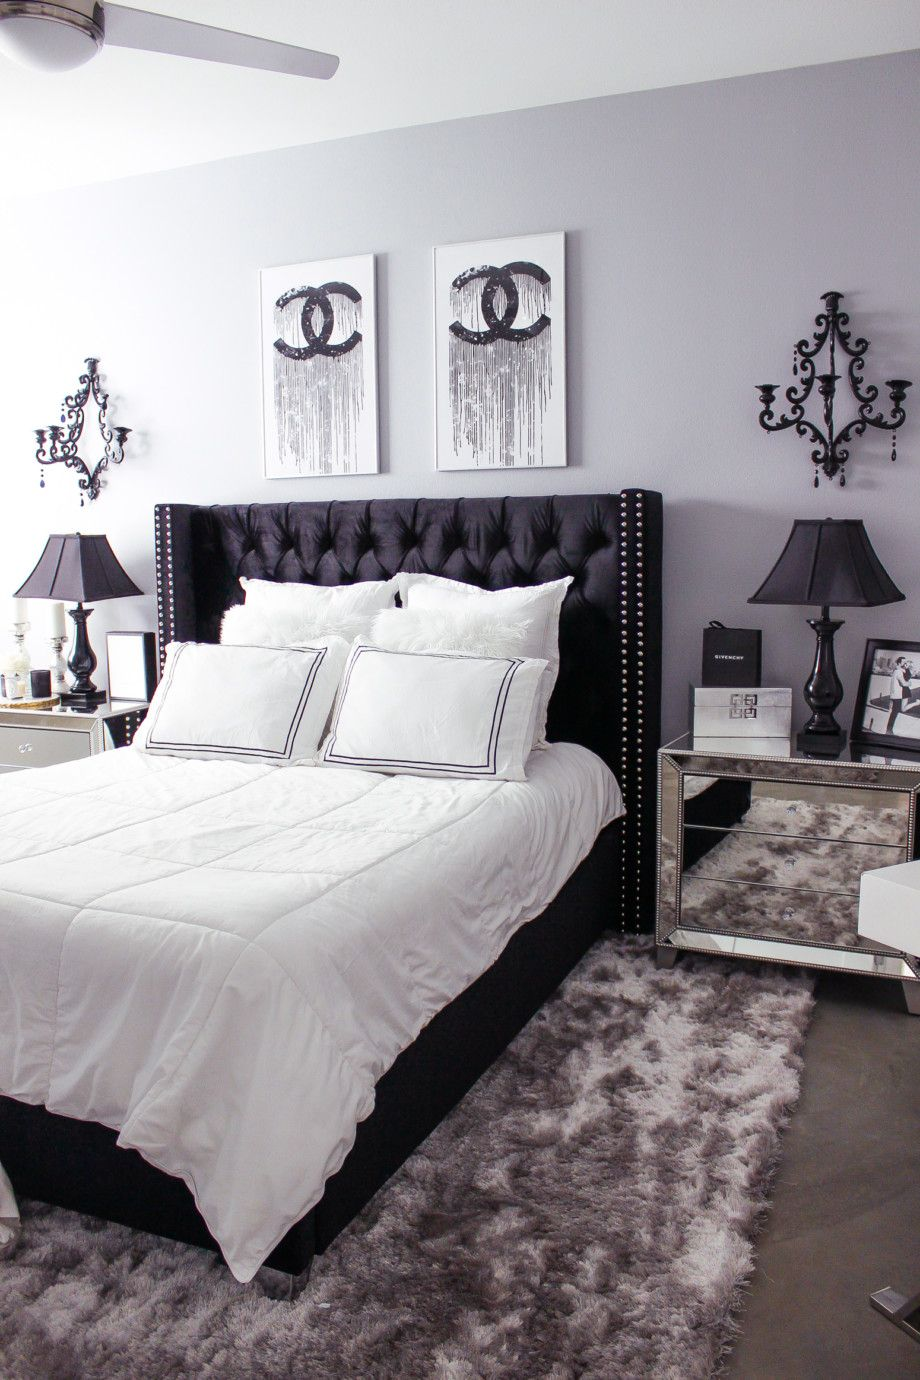 Black white bedroom decor chic glam bedroom decor blondie in the city hayley larue bedroom decor chanel decor